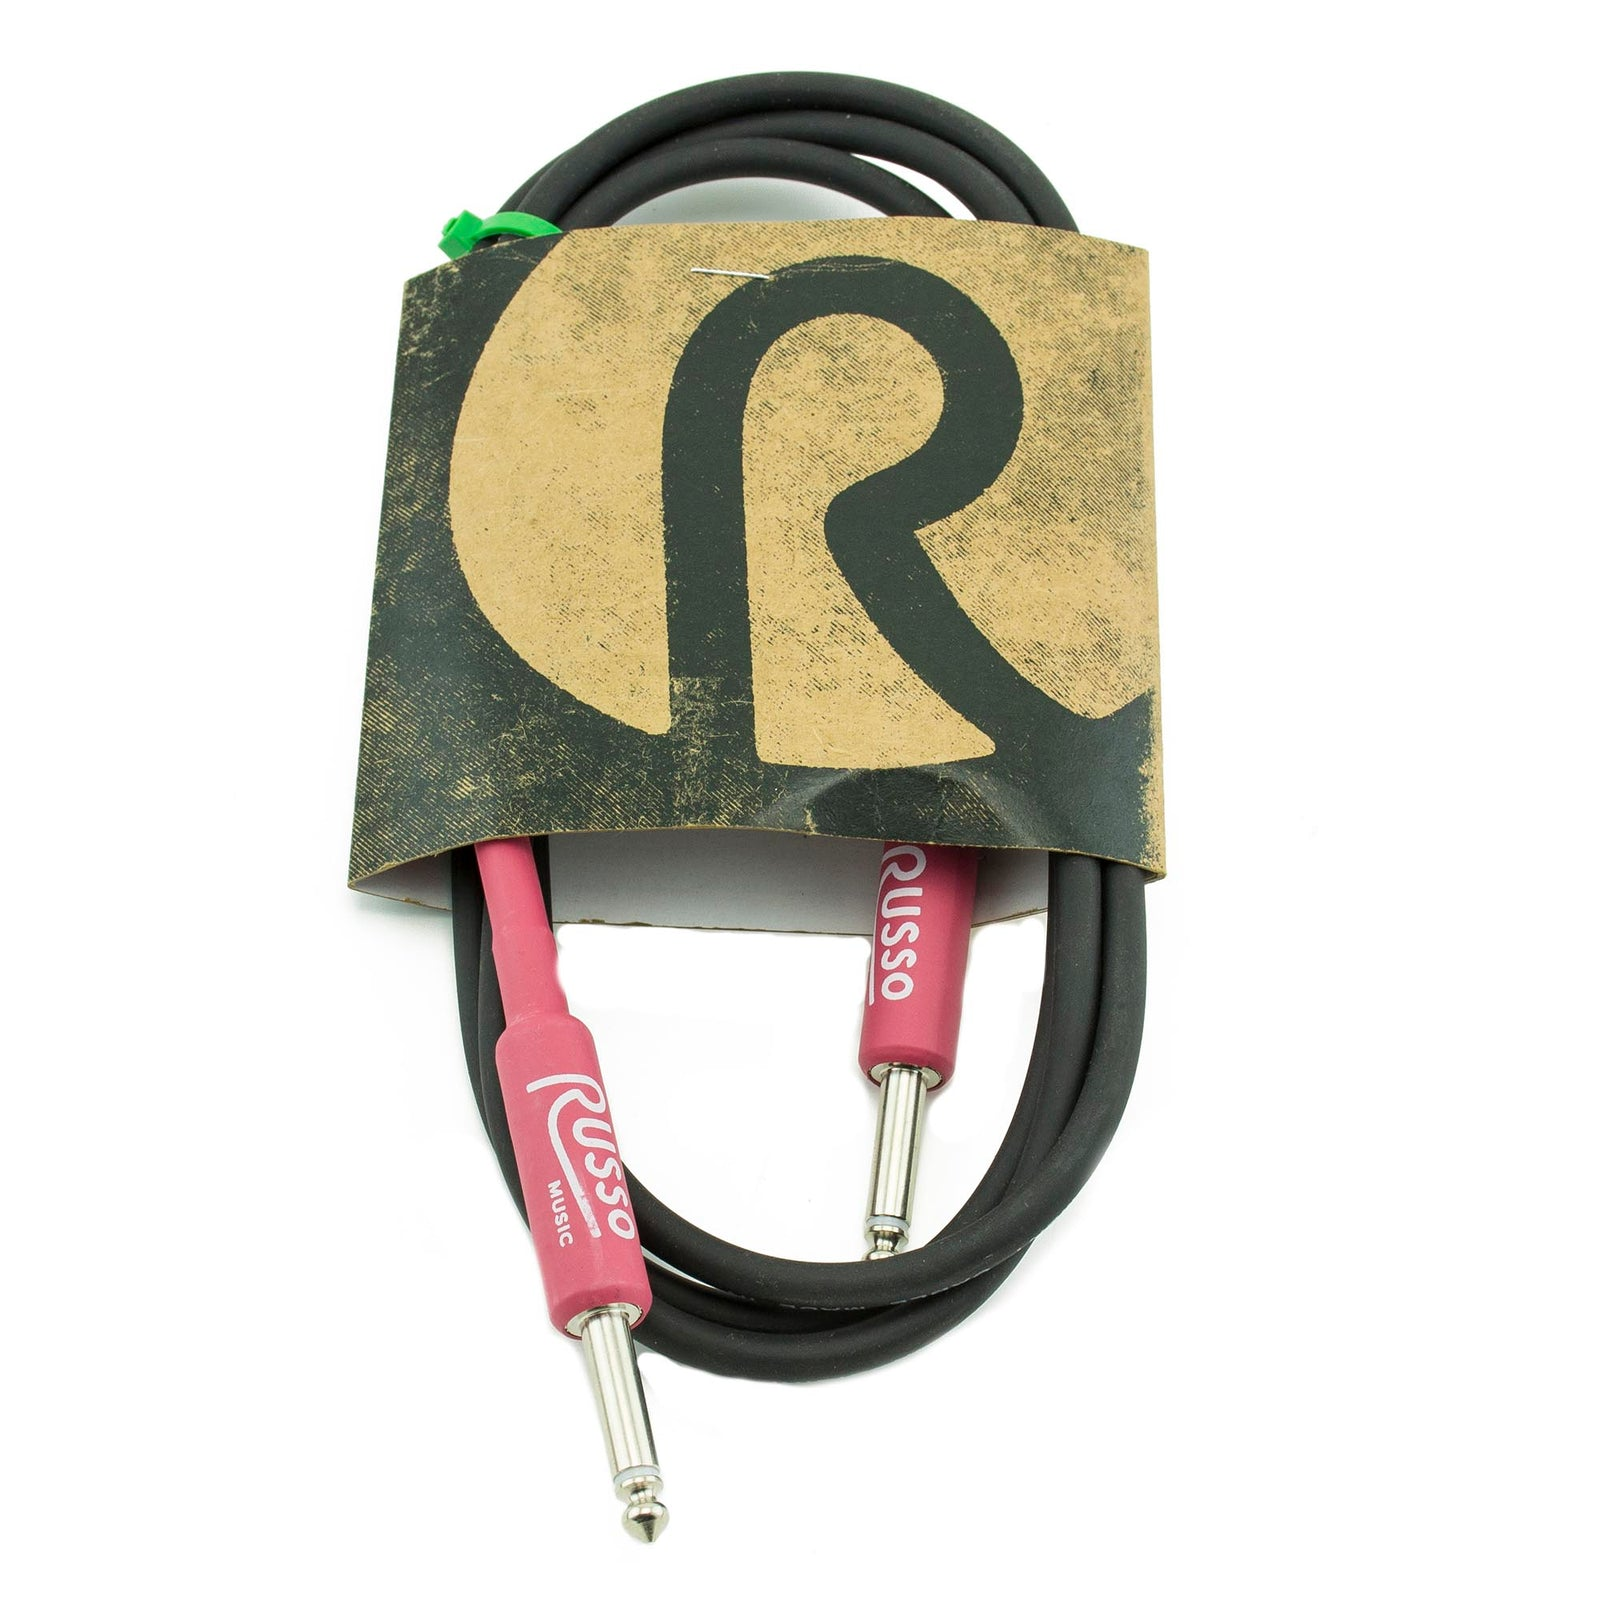 "Russo Music 1/4 To 1/4"" Unbalanced Cable - 6'"